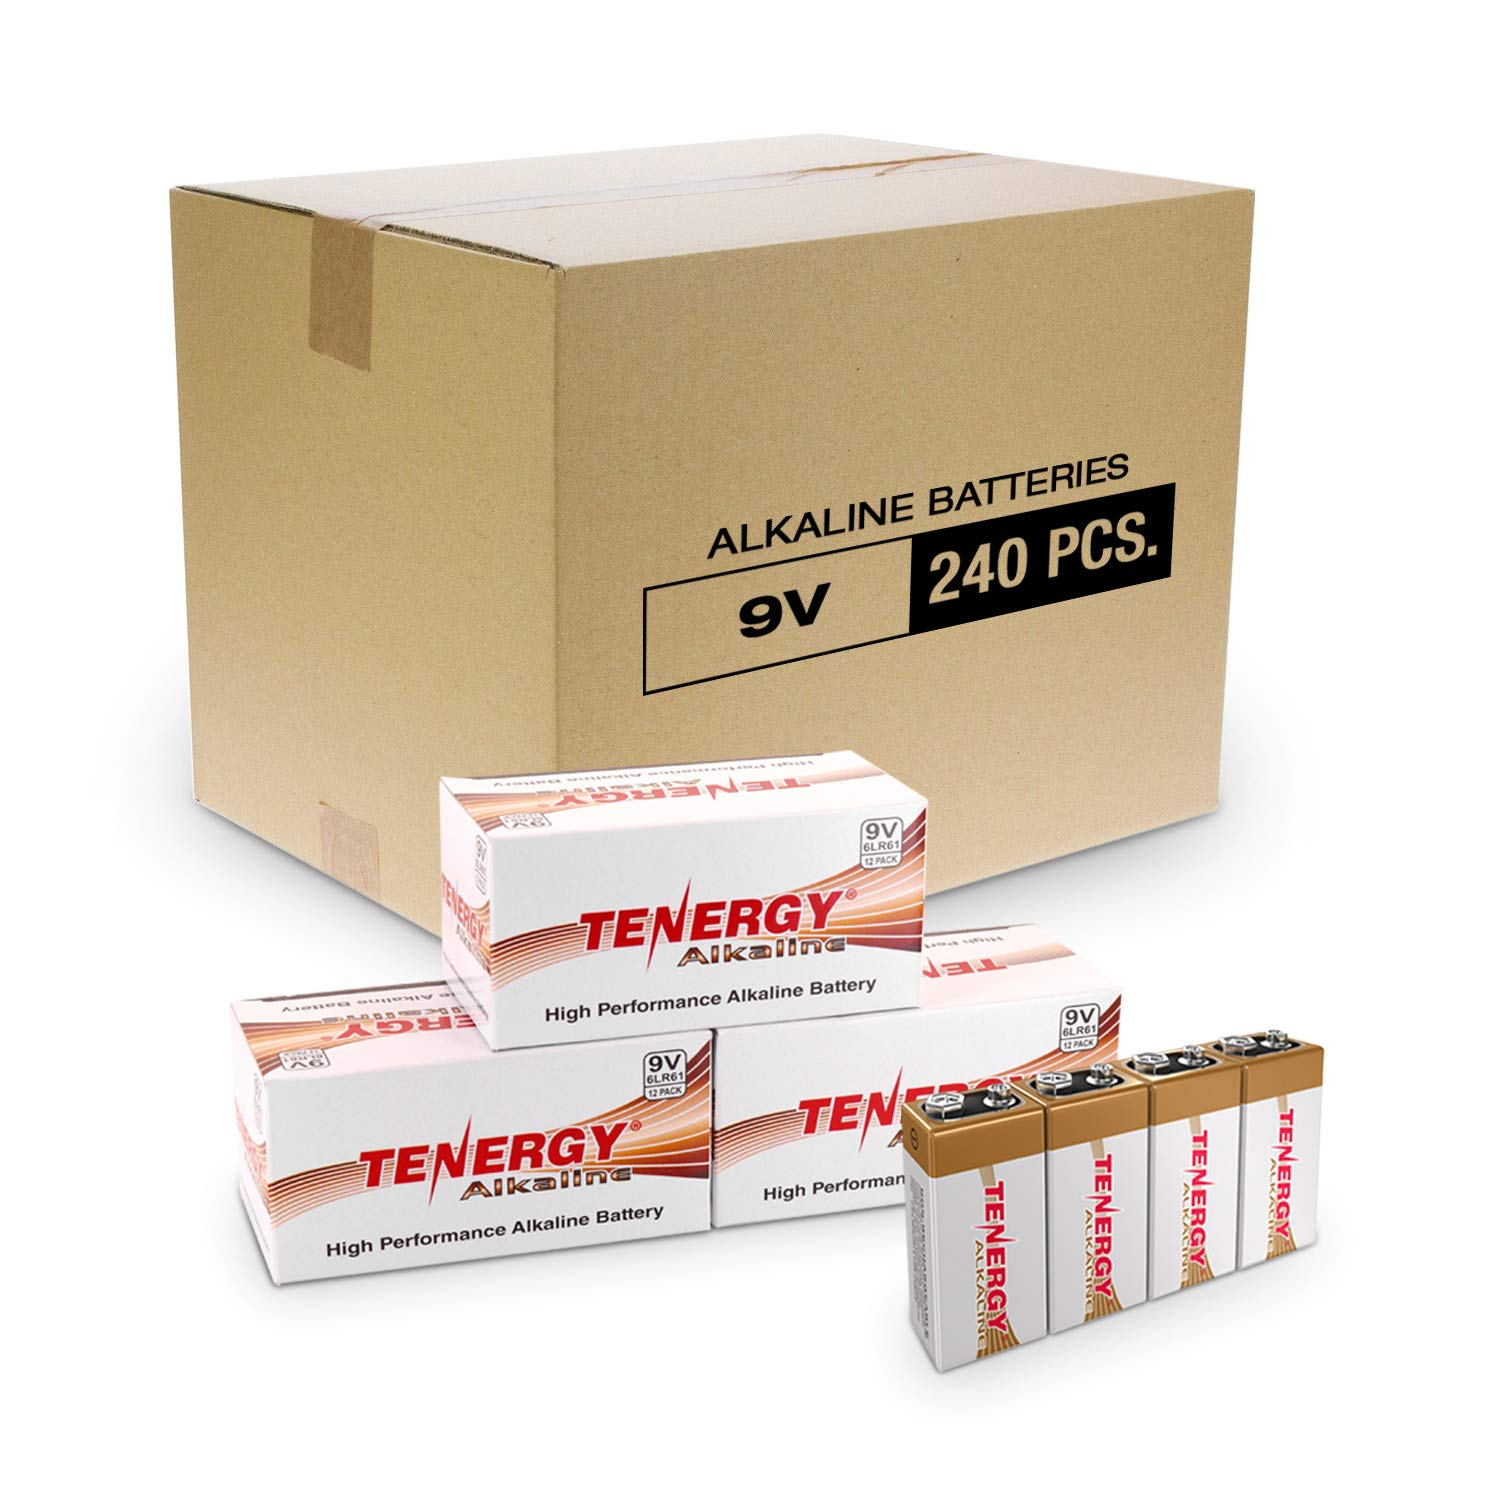 Tenergy 6LR61 9V Alkaline Battery, Non-Rechargeable Battery for Smoke Alarms, Guitar Pickups, Microphones and More, 240-Pack by Tenergy